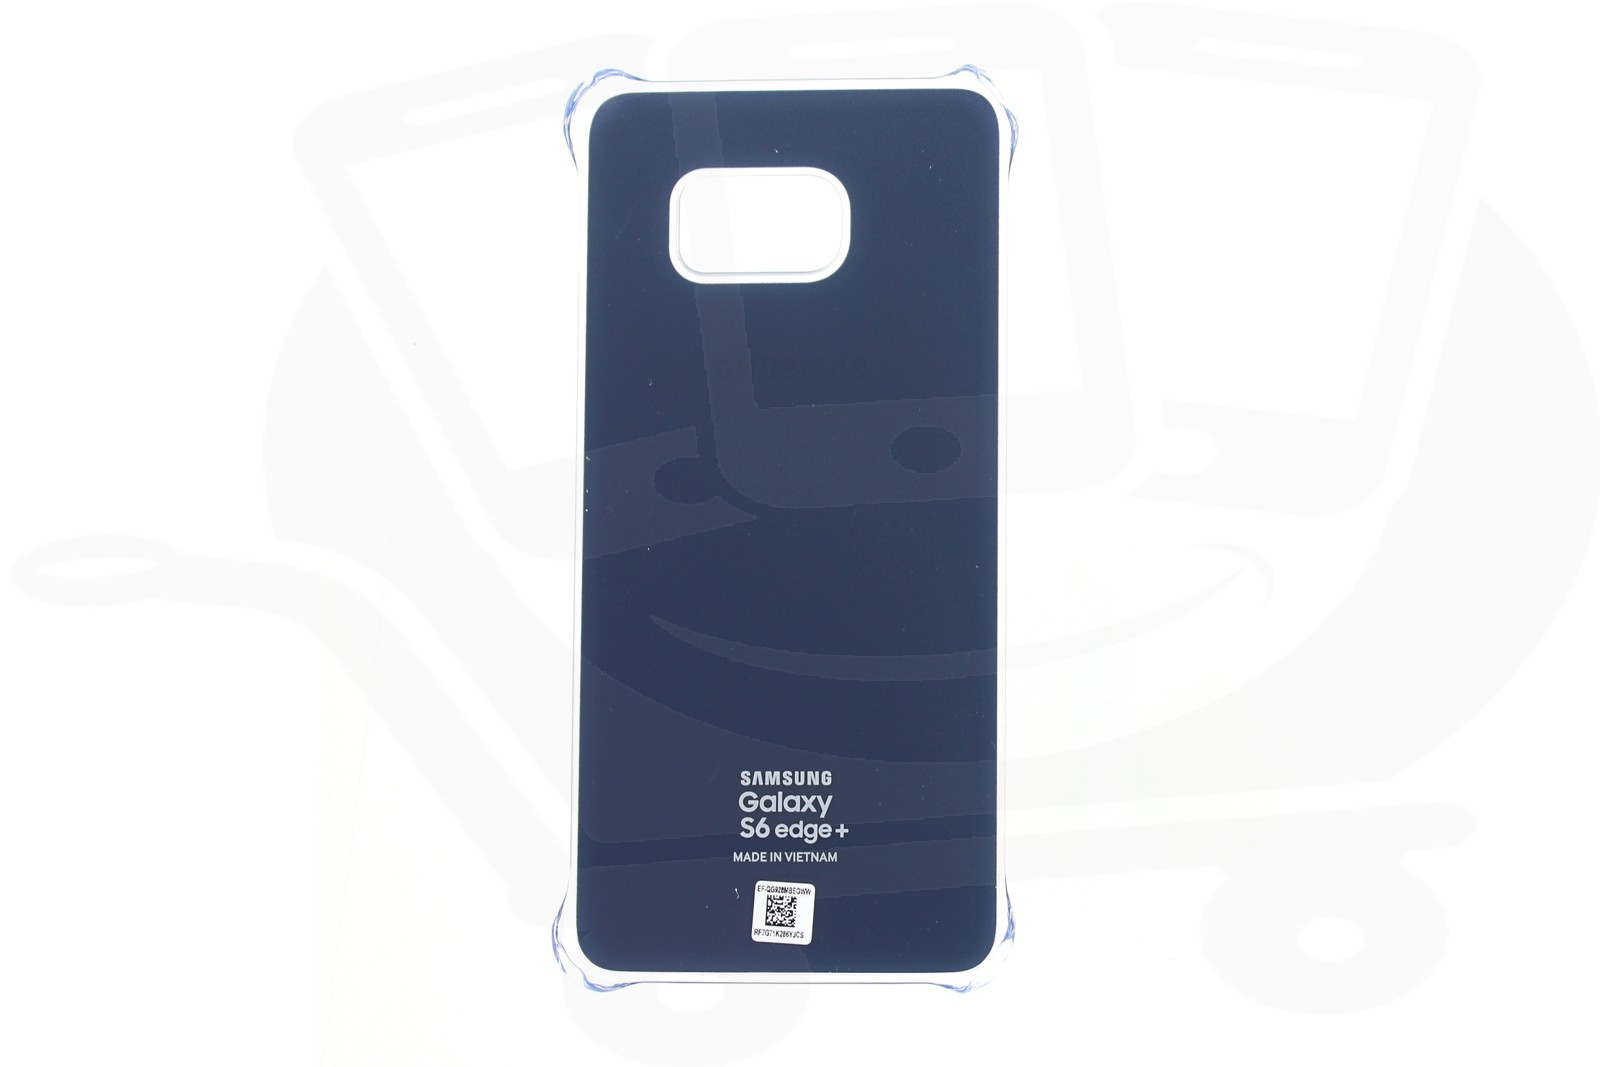 online store 1335e 56446 Official Samsung Galaxy S6 Edge+ Blue / Black Glossy Cover - EF ...